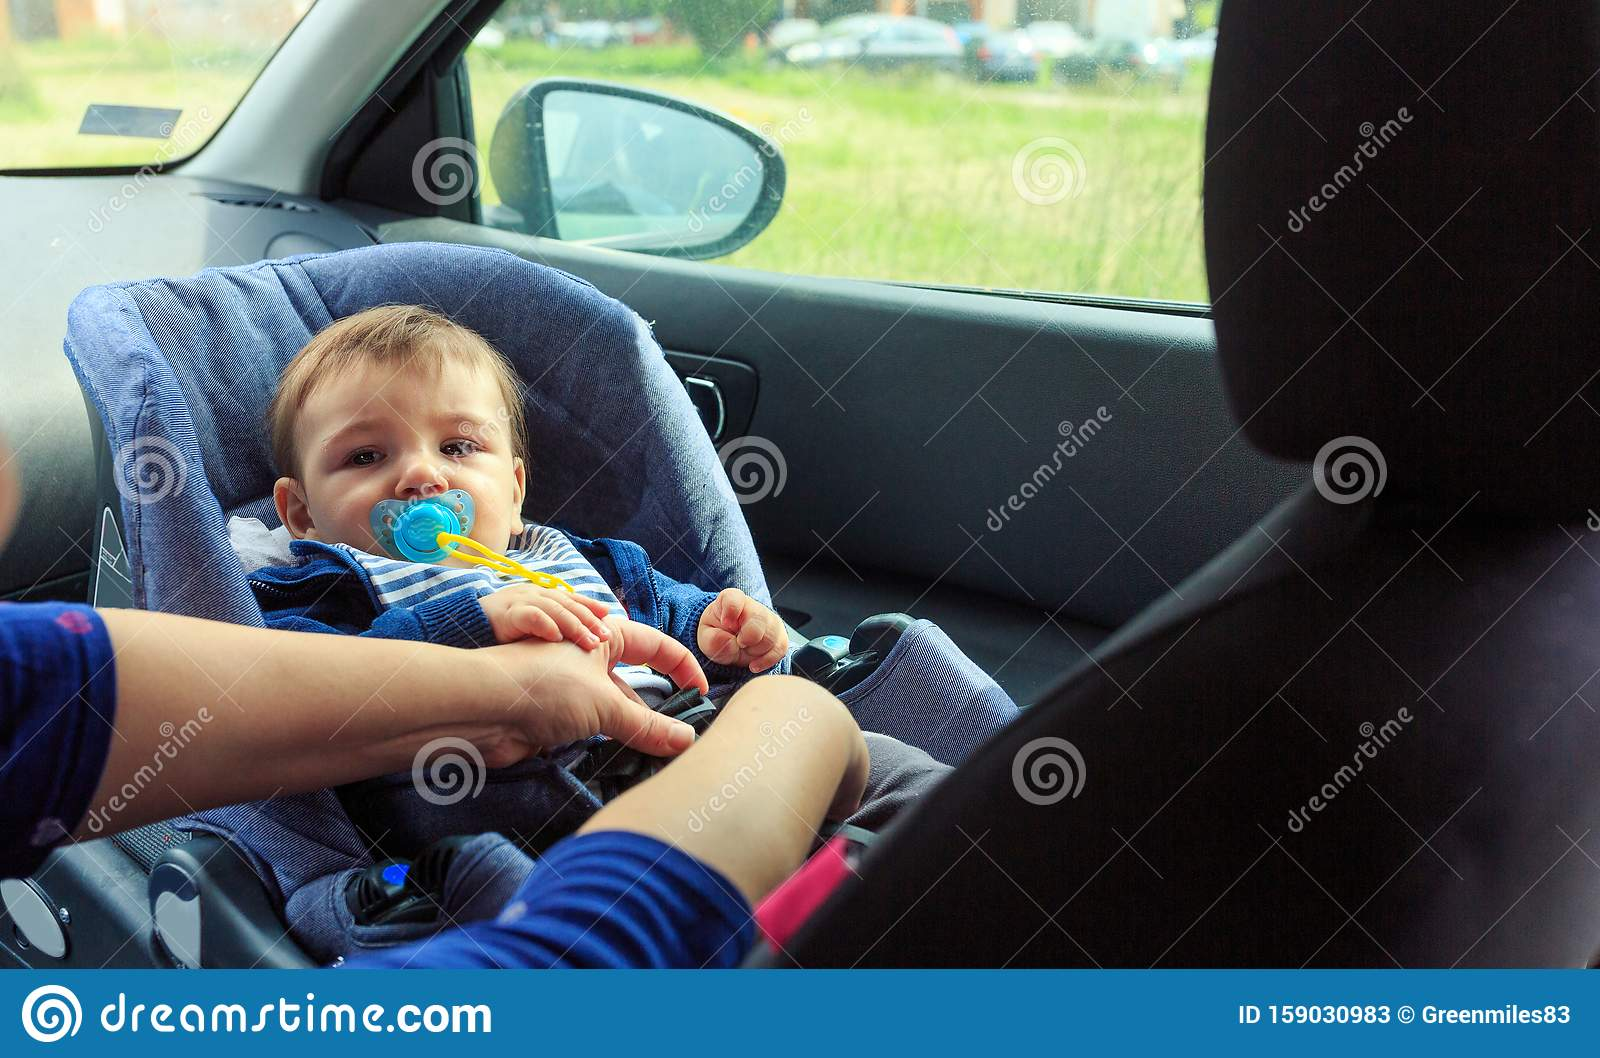 Children Car Chair Baby Car Seat For Safety Boy In The Child